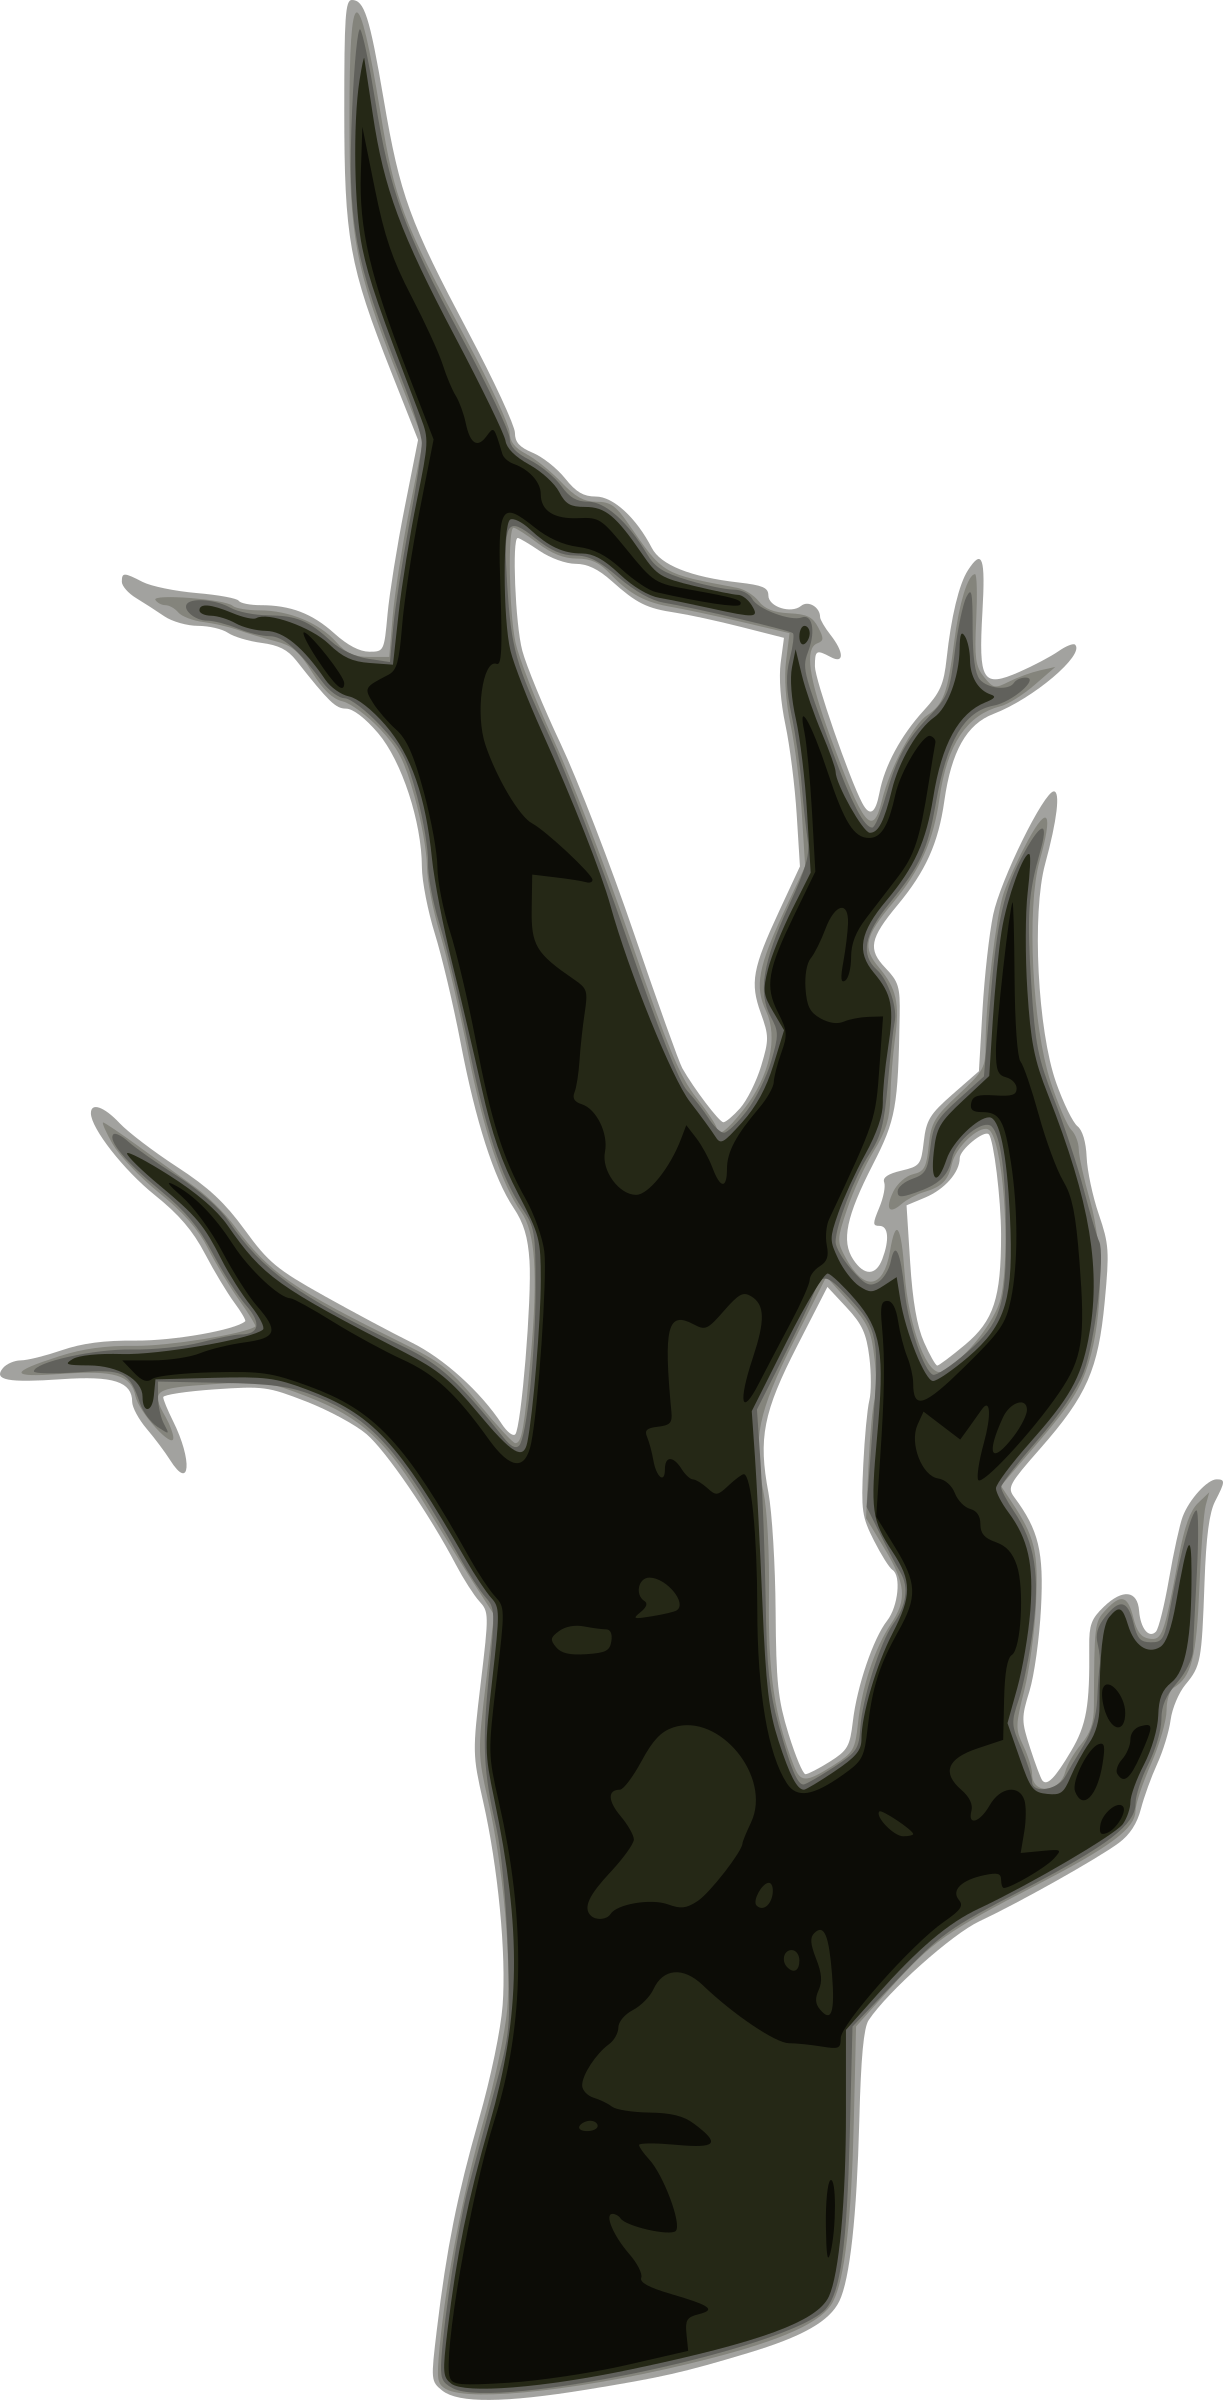 Clipart dead tree graphic royalty free Clipart - Dead Tree graphic royalty free